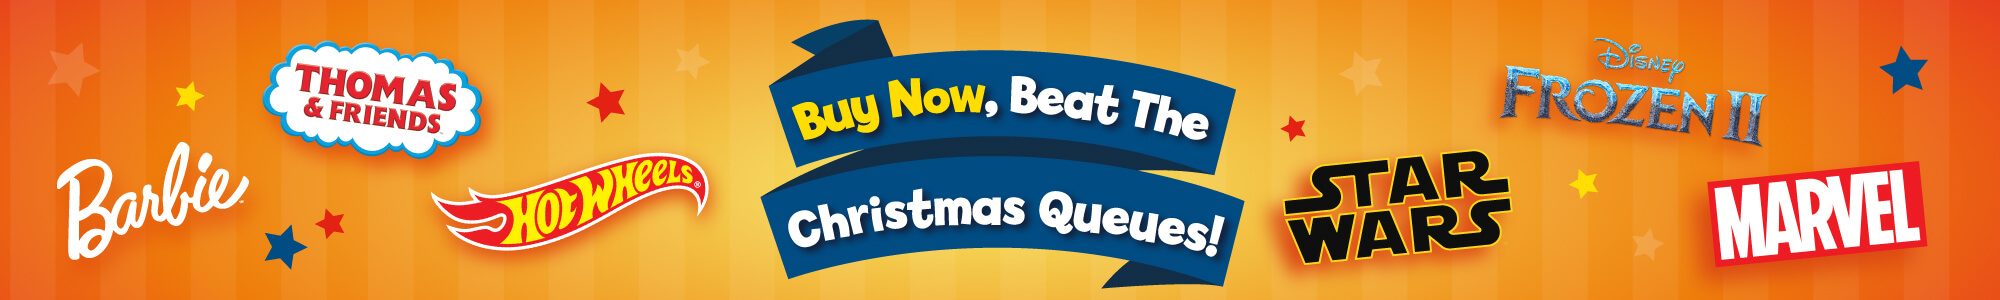 Beat-Christmas-Queues_Page-Banner_2000x300px_v3.jpg